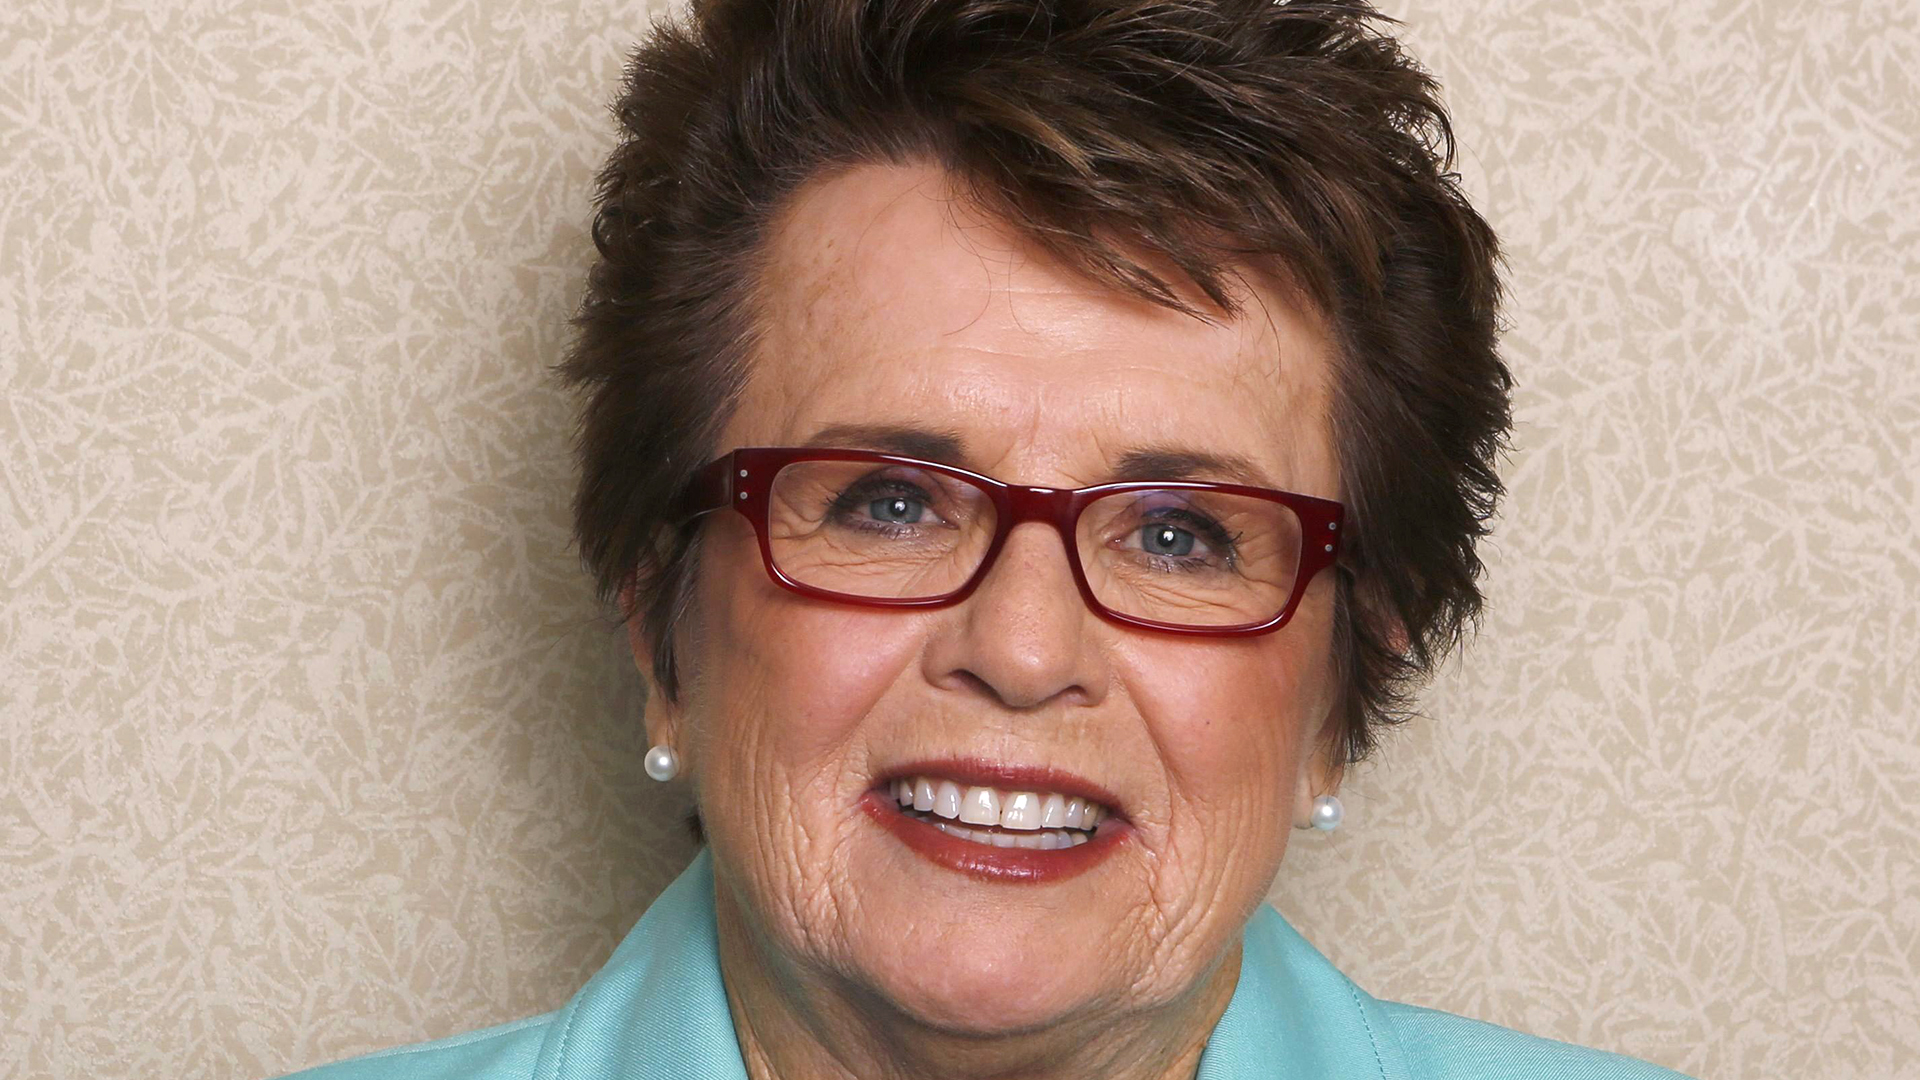 Billie Jean King joins Matt Lauer for a live interview on Thursday